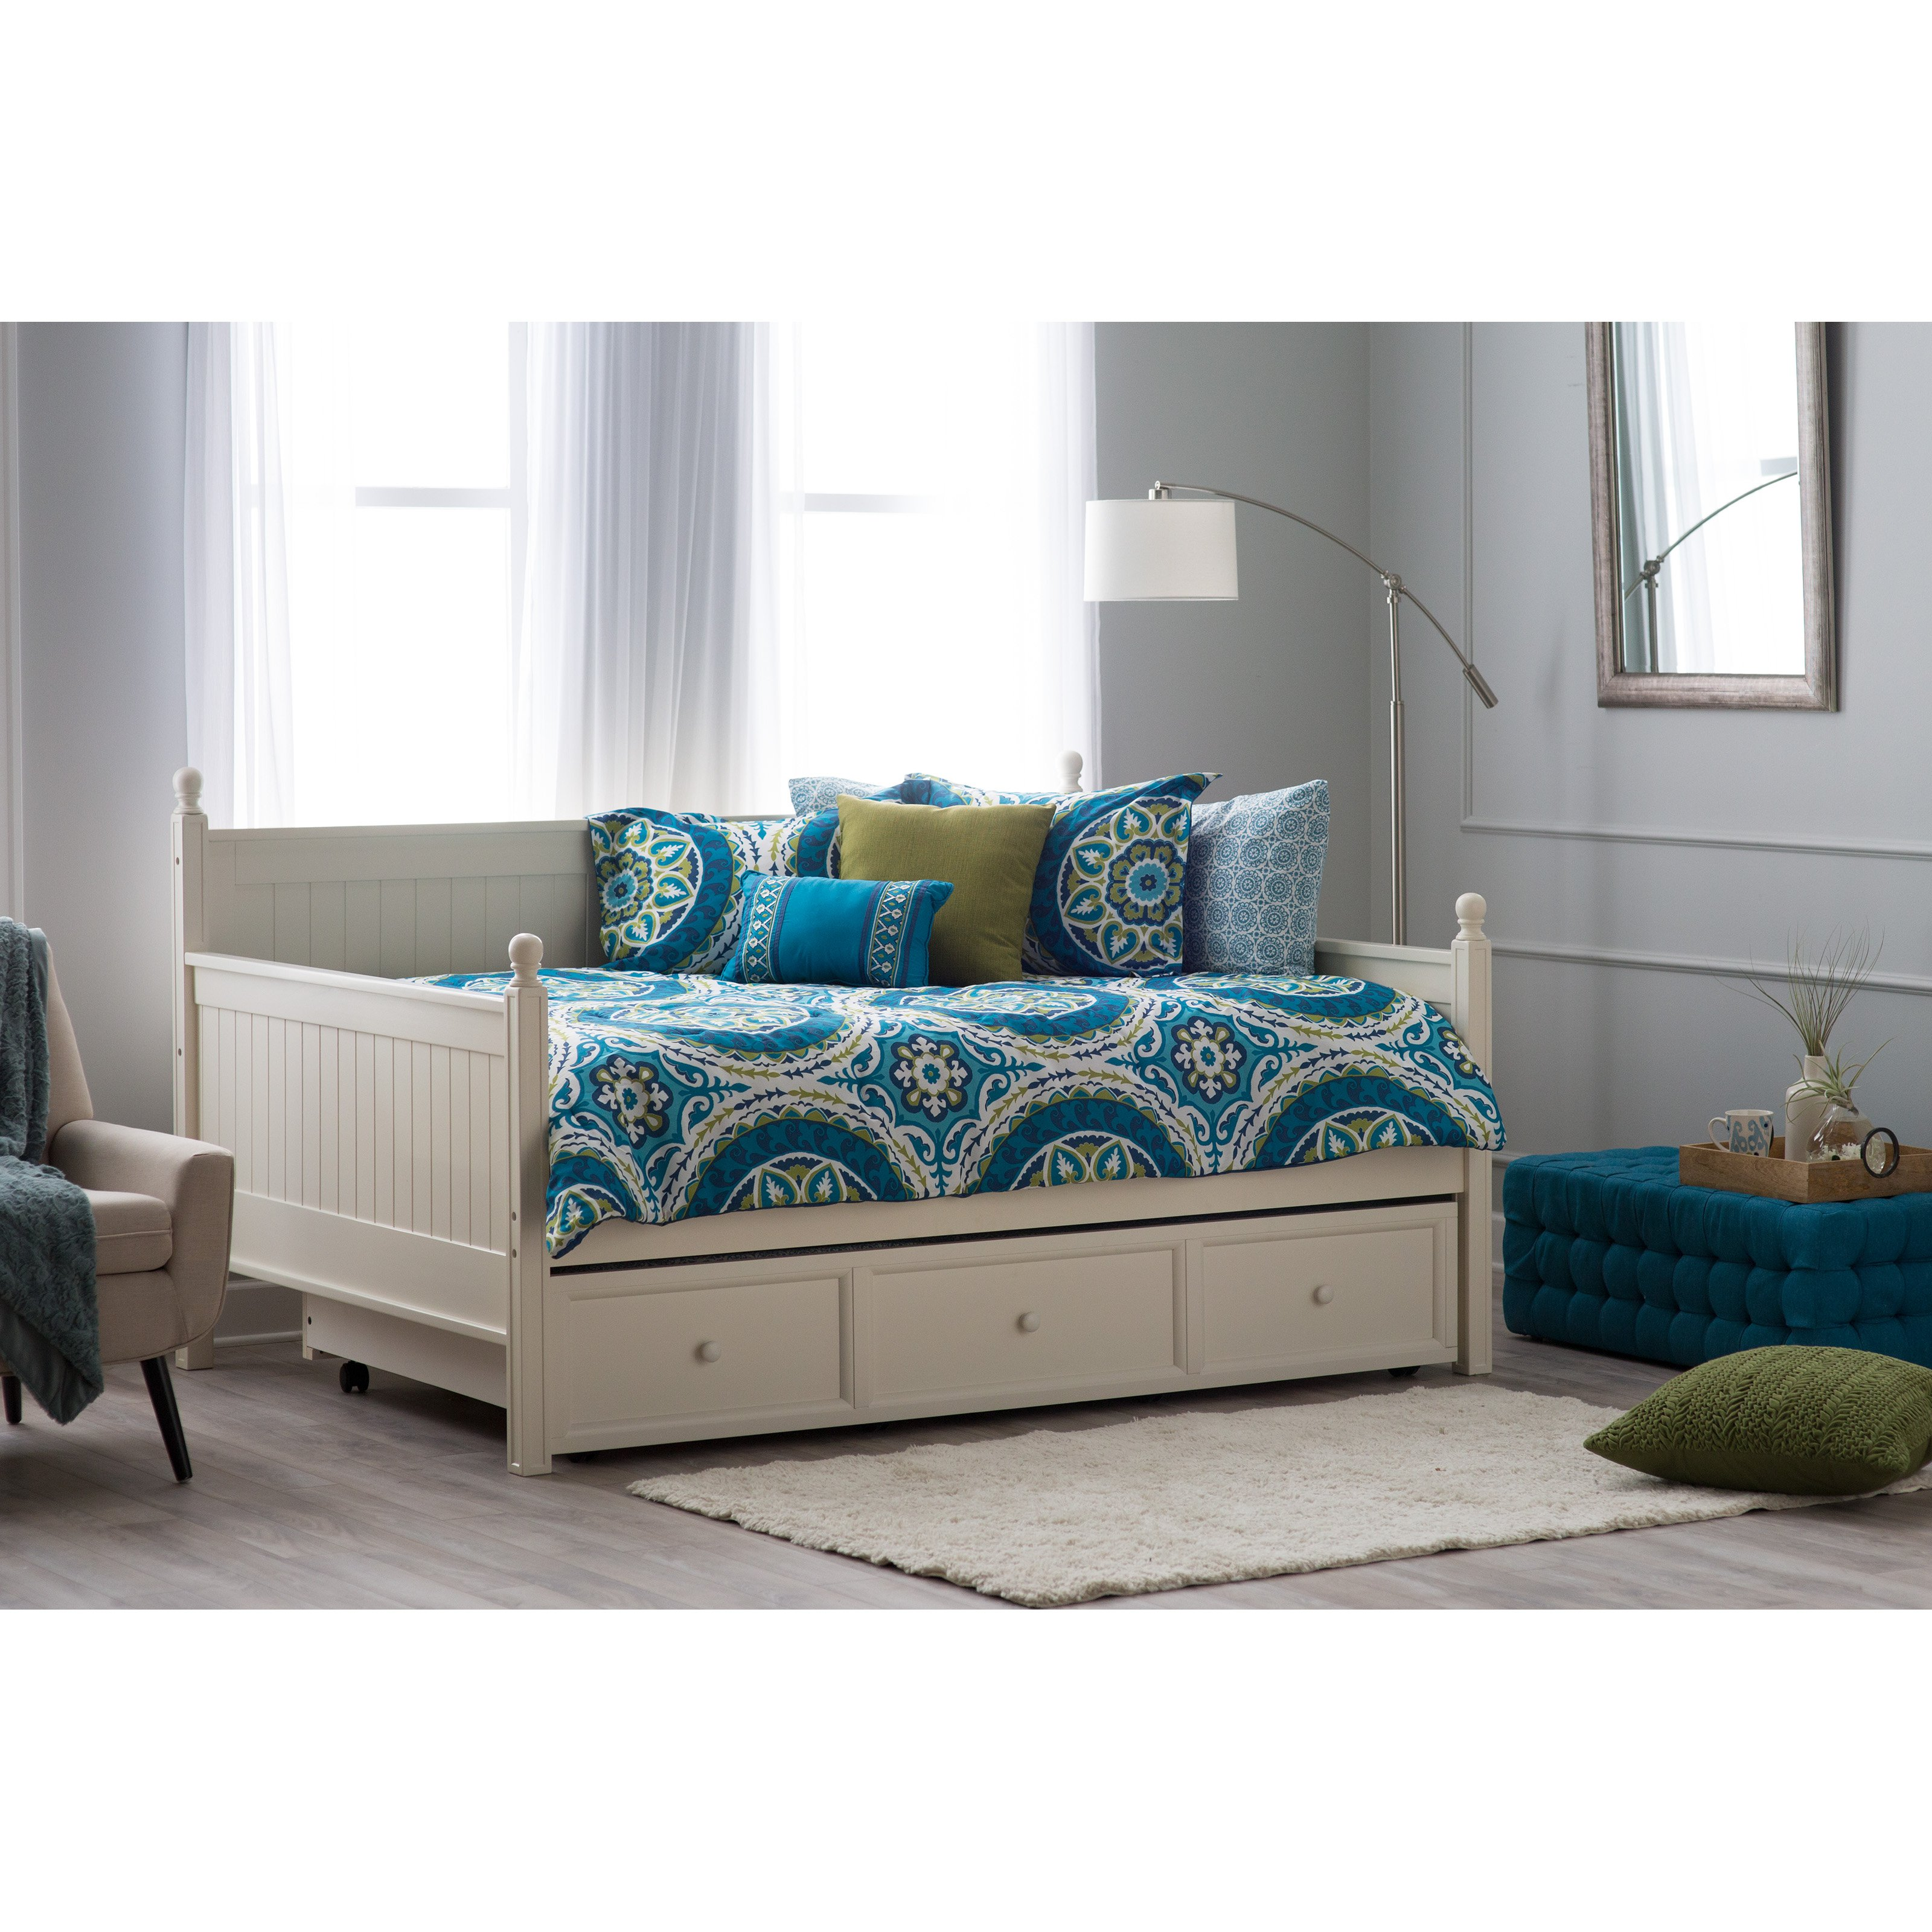 fresh bedroom engaging full size ikea daybeds with trundle bed